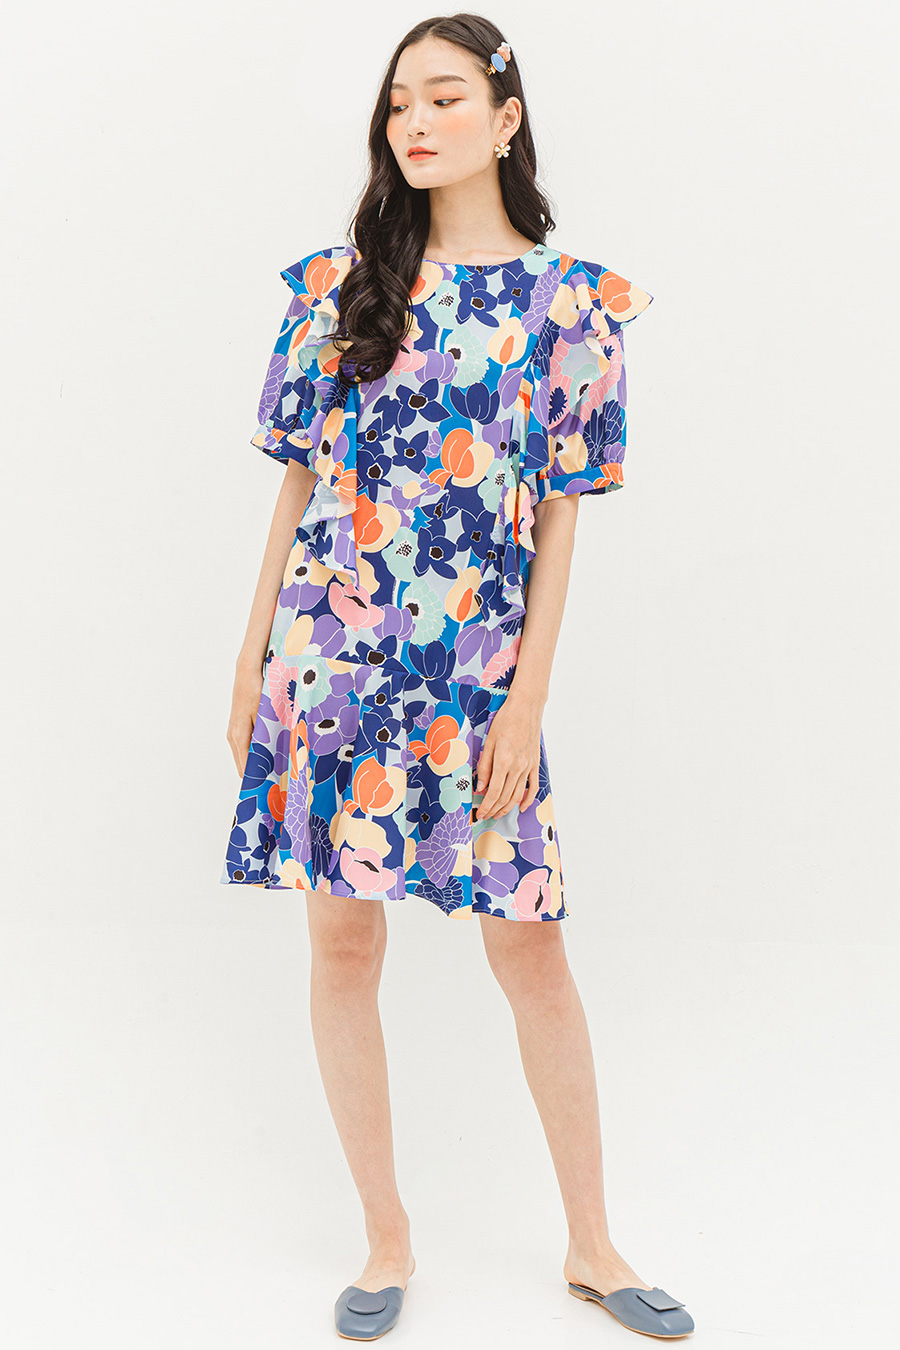 *RESTOCKED* VALERIE DRESS - HYACINTH